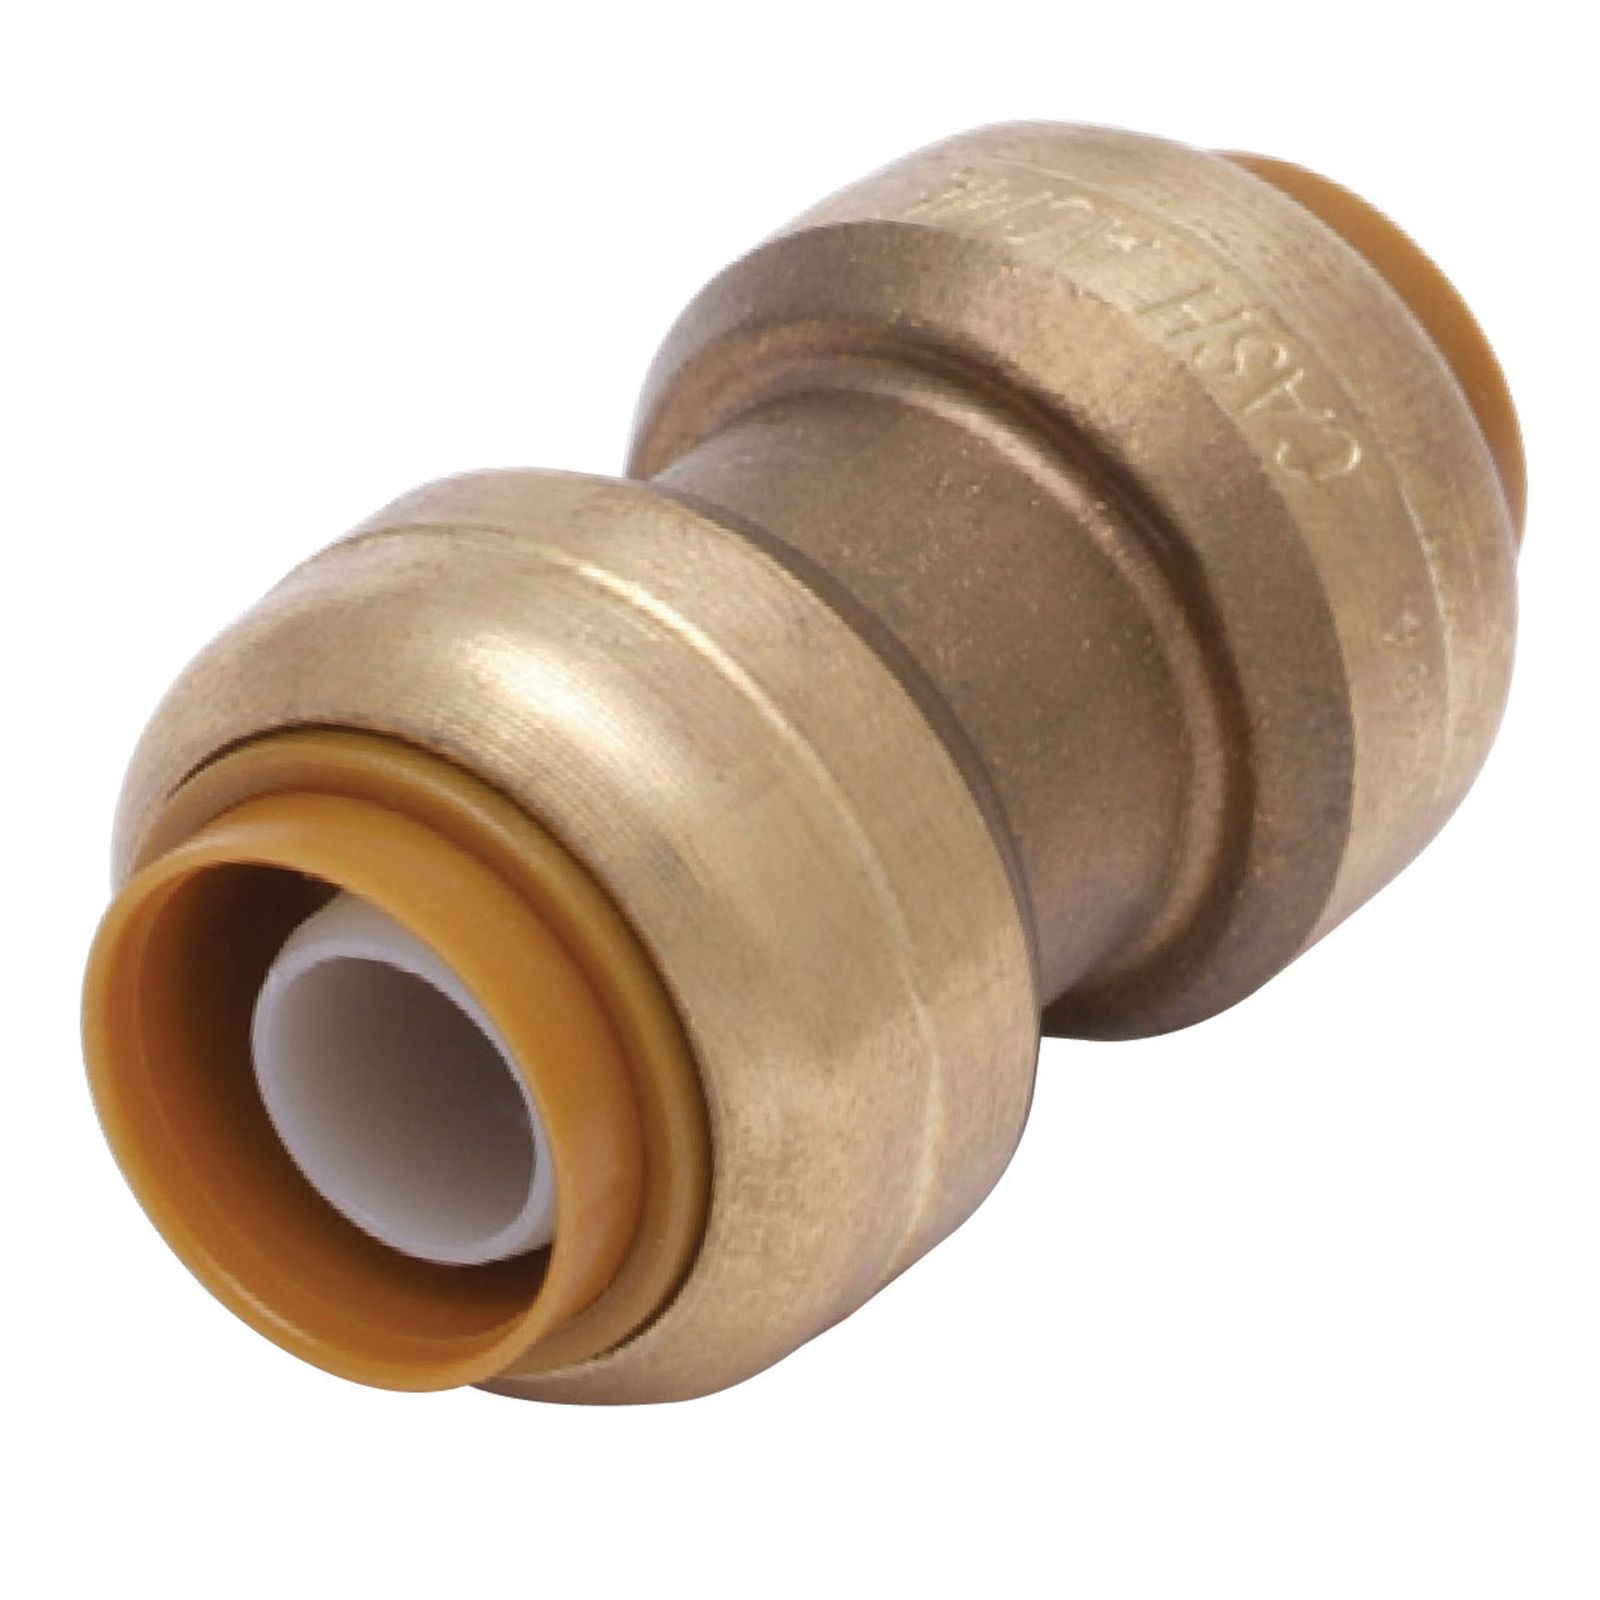 "SharkBite U008LF -  Coupling 1/2"" Lead Free"